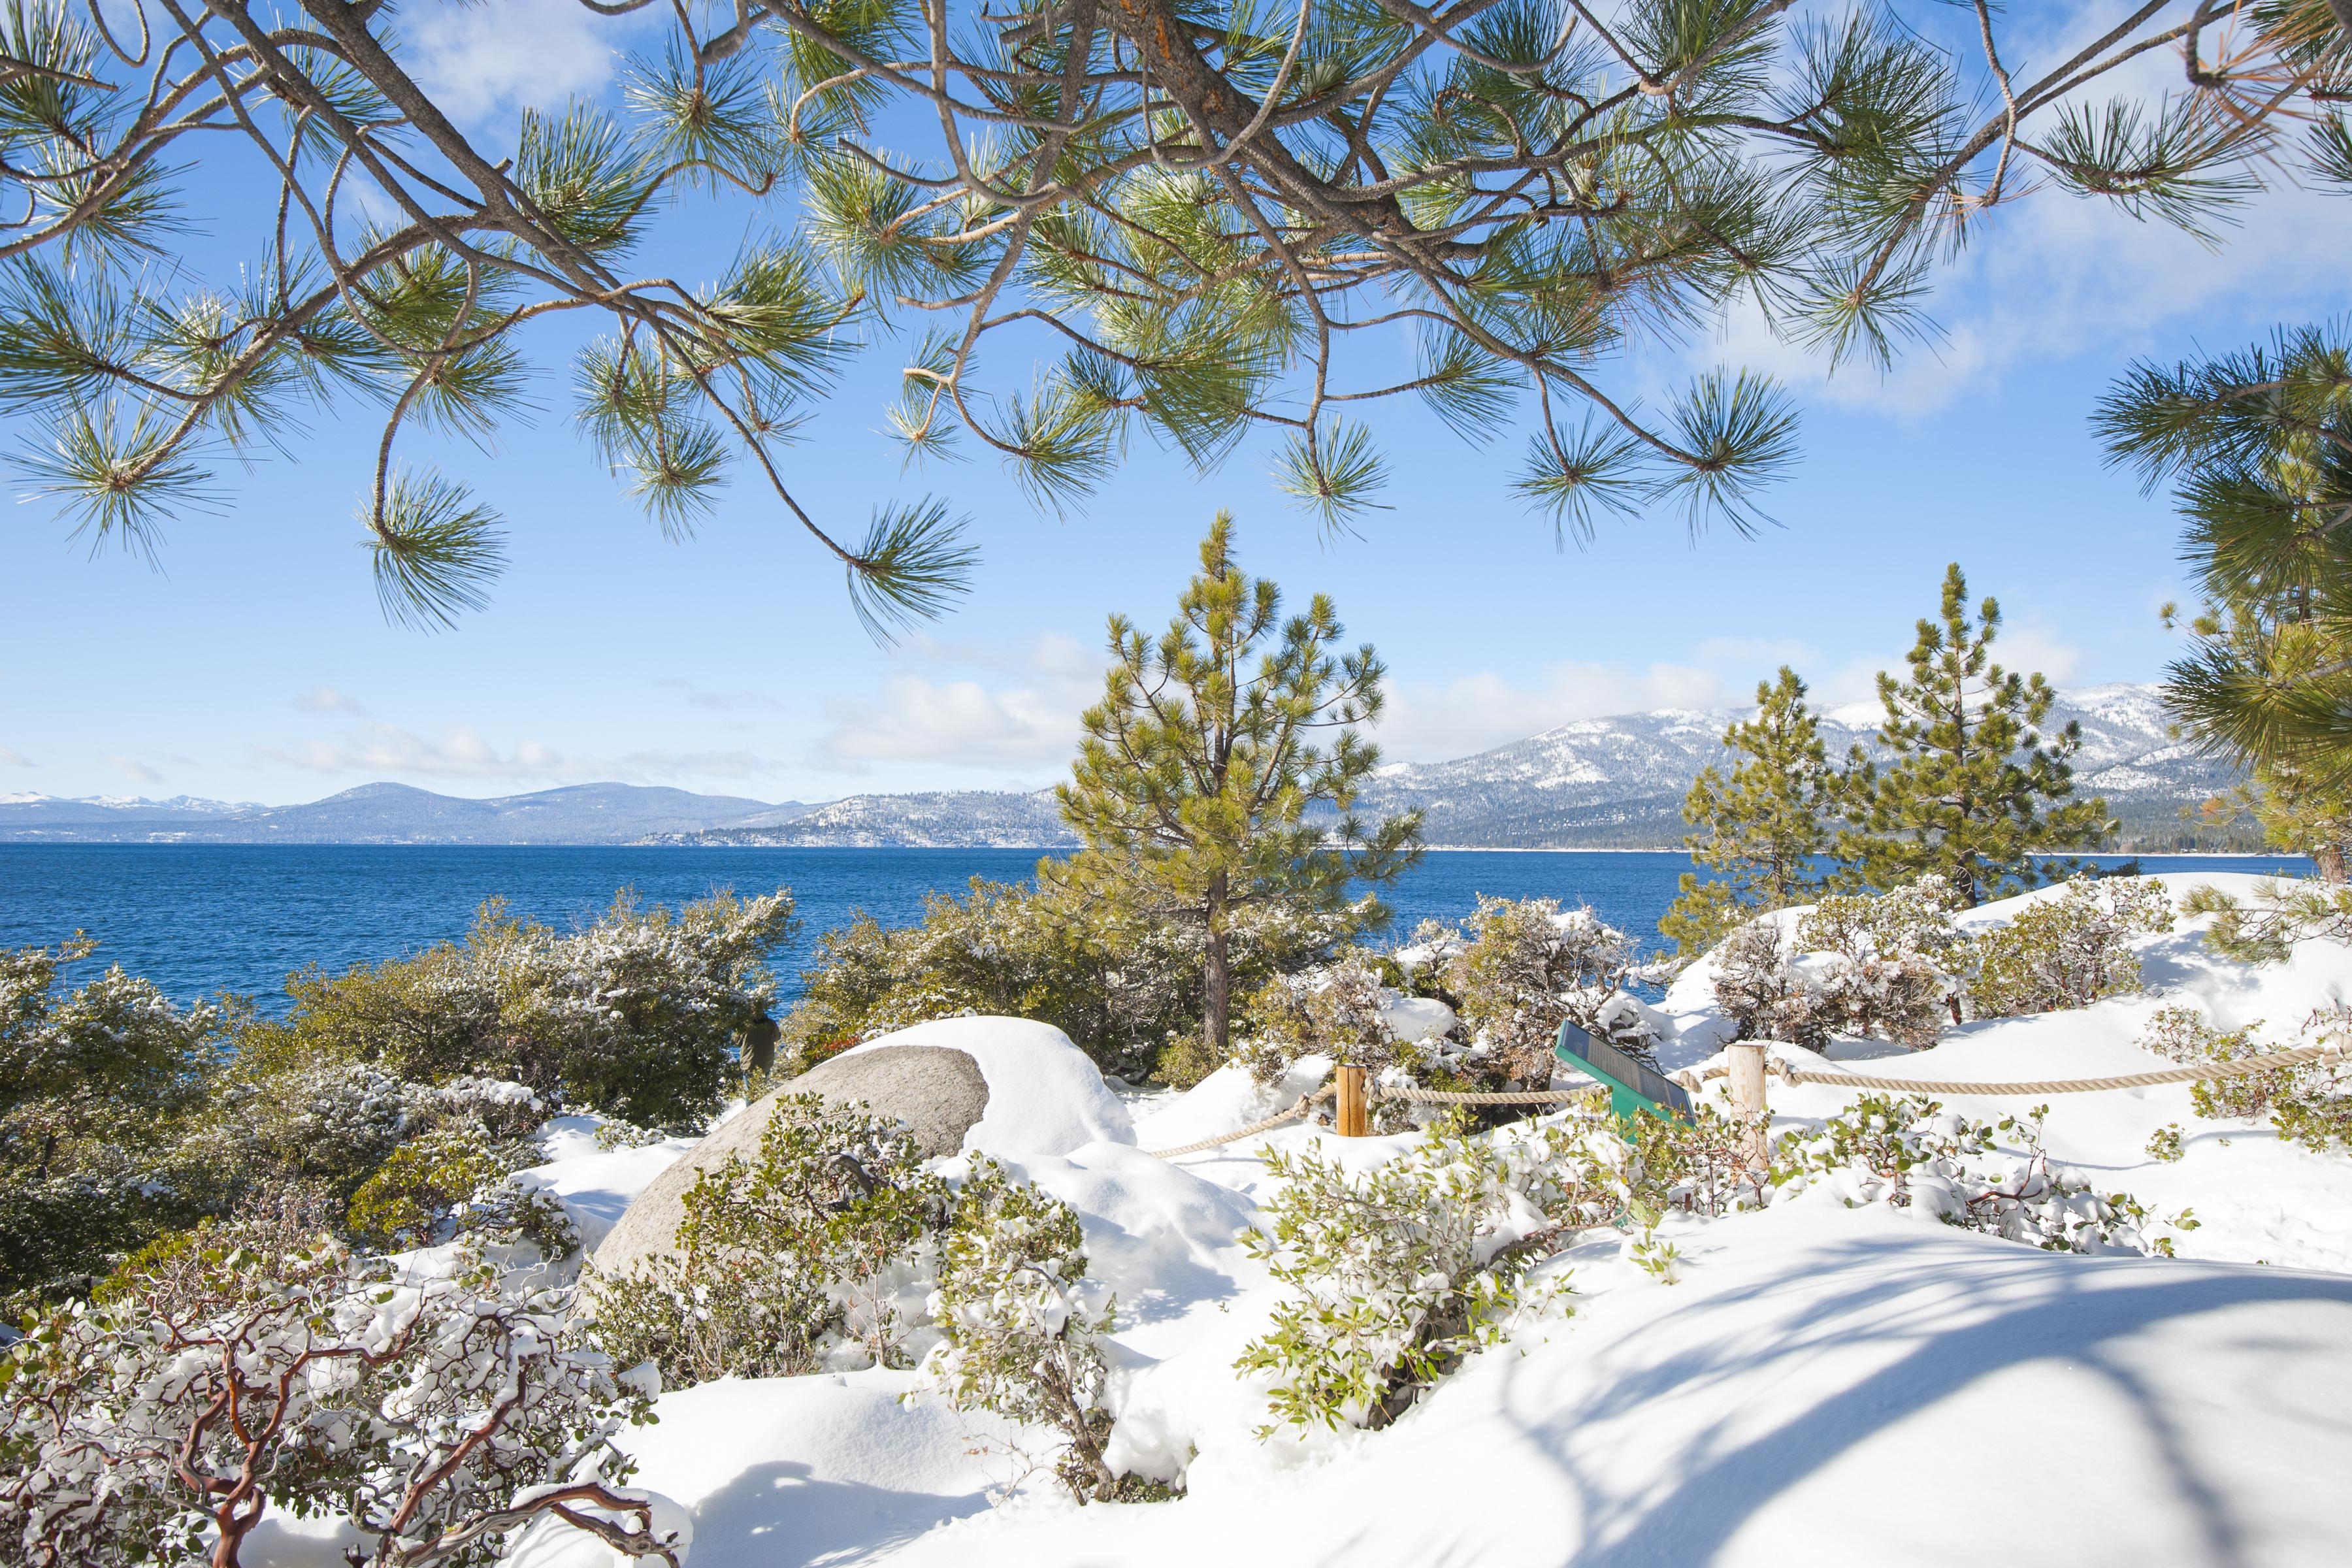 Plan a visit to Heavenly, offering gorgeous vistas of Lake Tahoe.